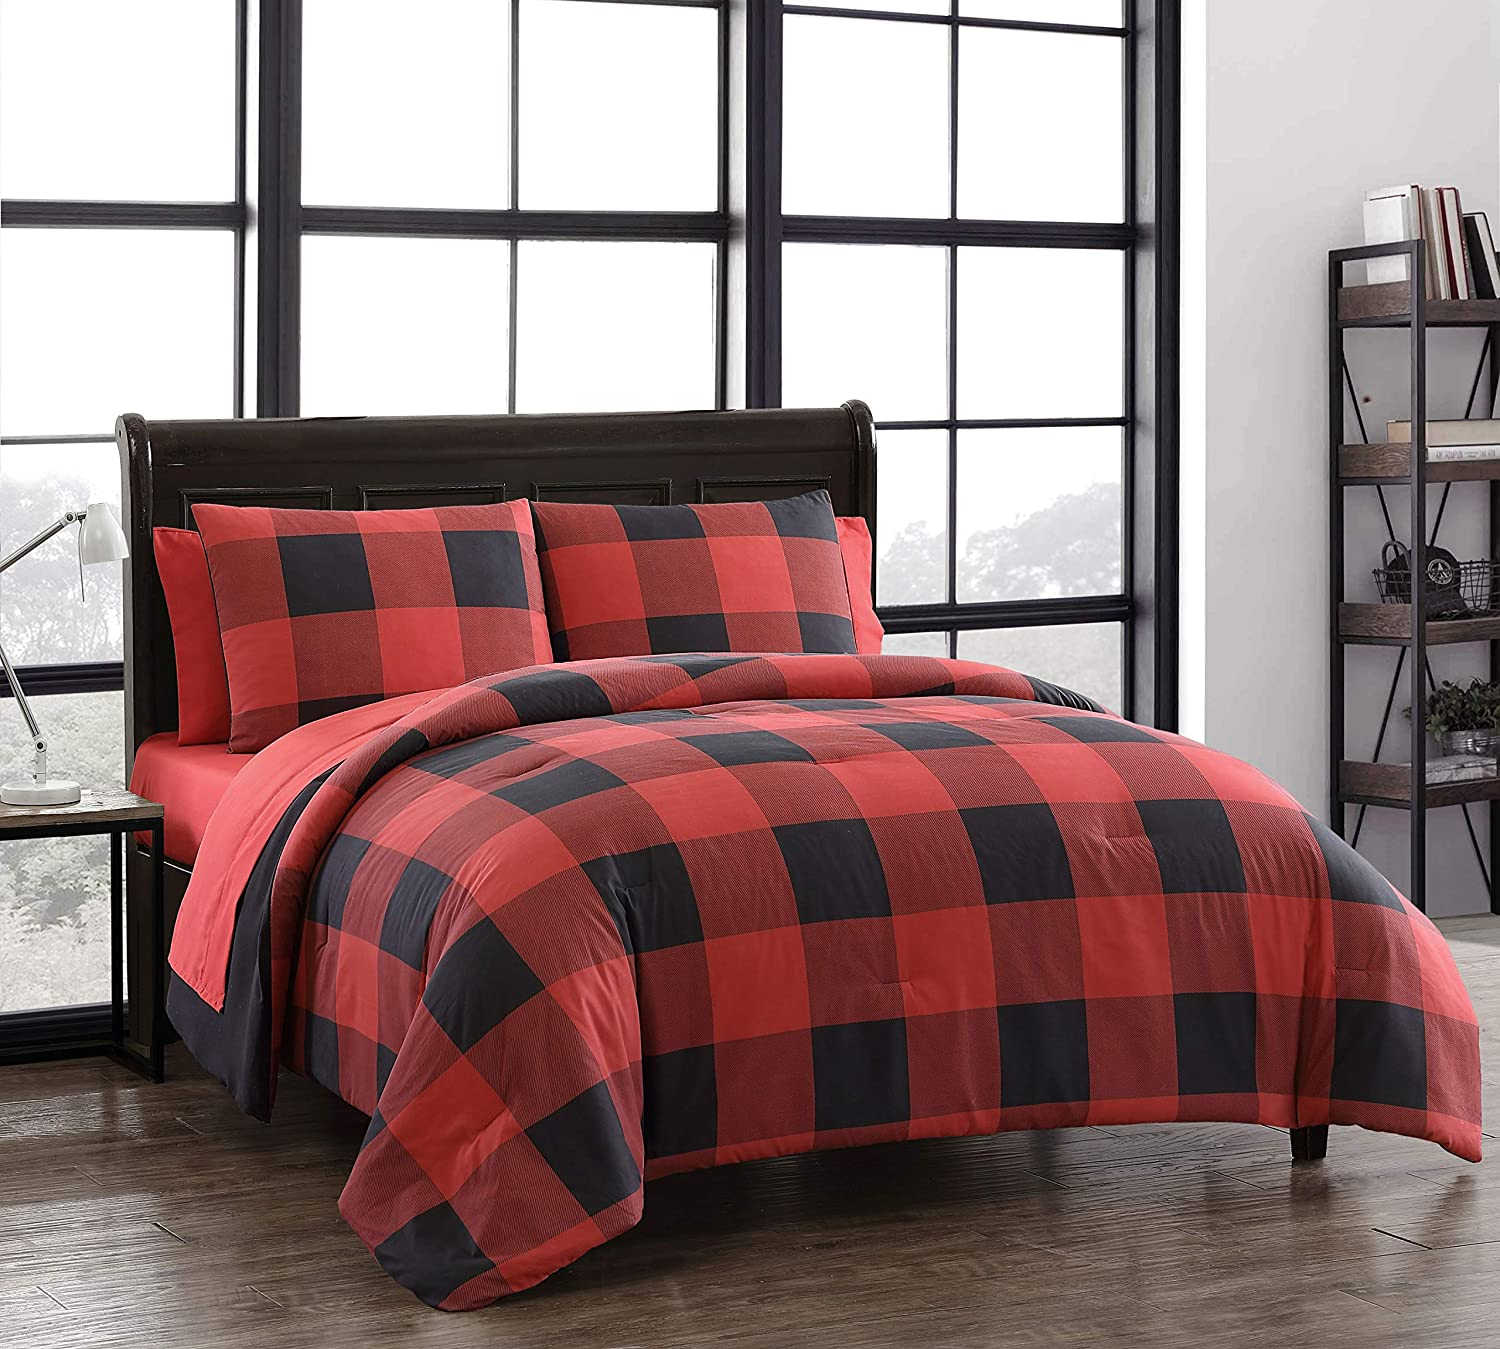 Amazon Com Addison Home 7 Piece Buffalo Plaid King Comforter Set Bed In A Bag Lightweight Ultra Soft Microfiber Reversible Comfortable Bedding Set Hypoallergenic Bedspread King Red And Black Home Kitchen